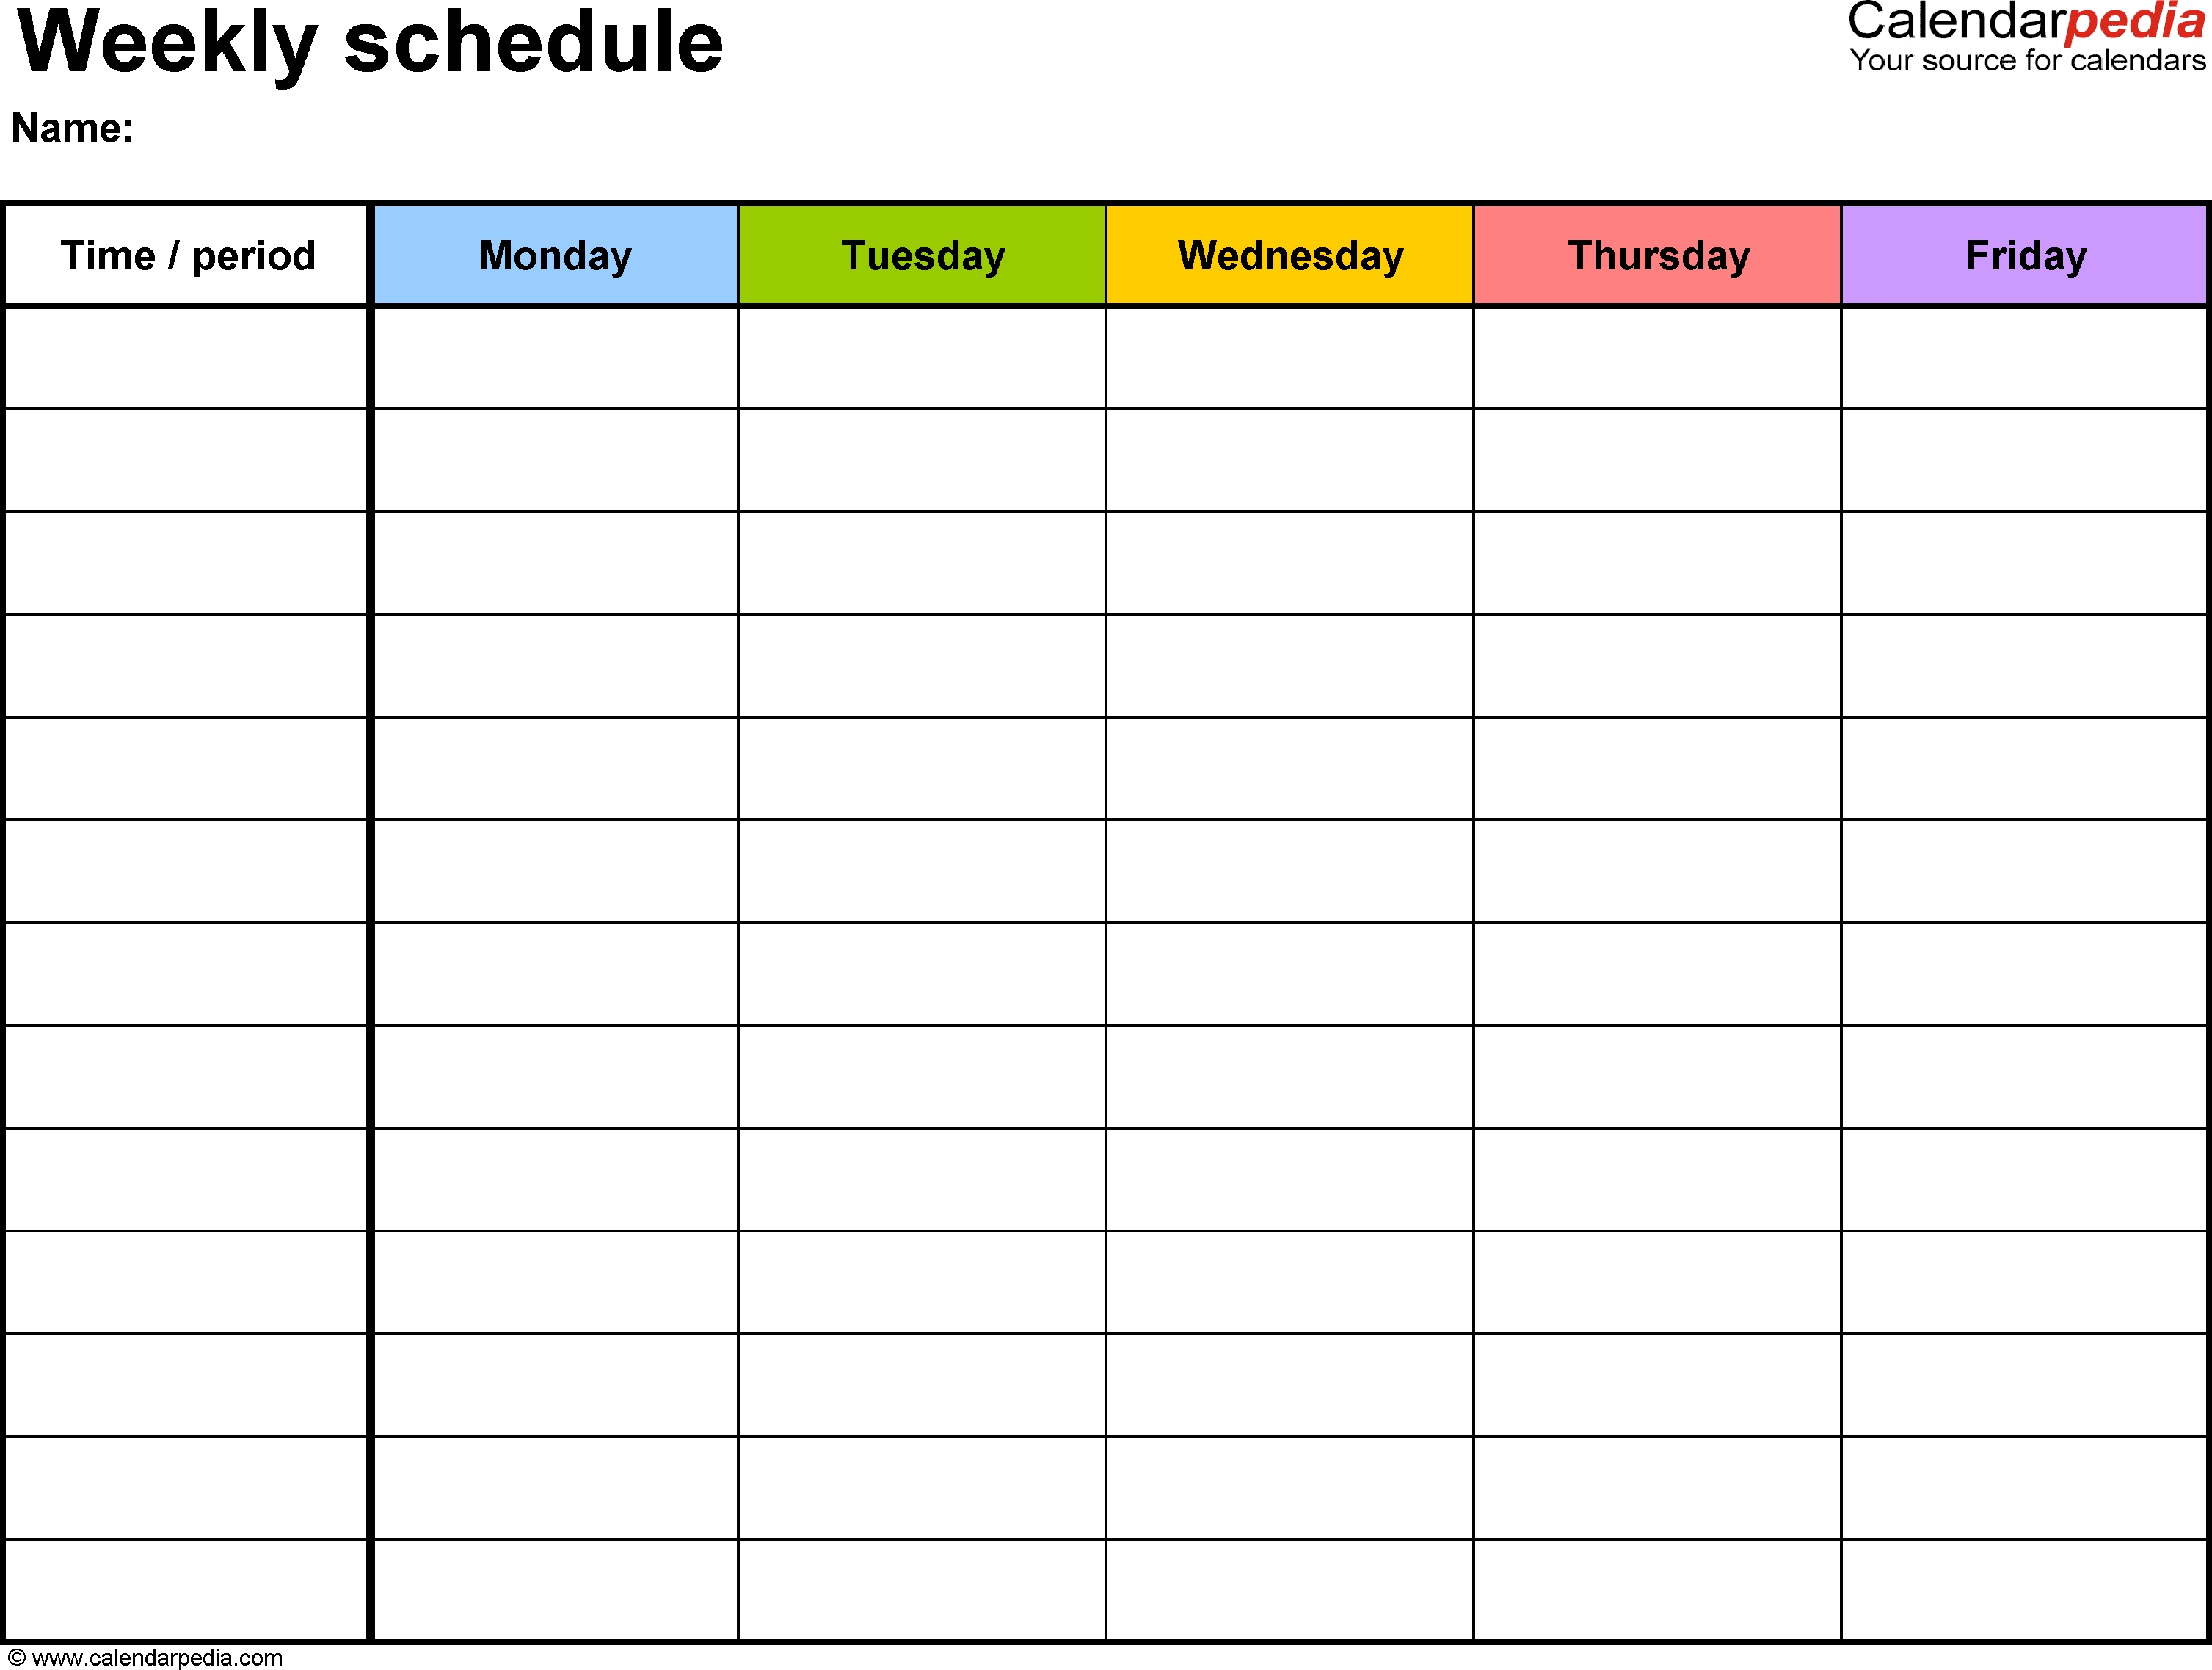 Free Weekly Schedule Templates For Word - 18 Templates throughout 7 Day Week Calendar Printable